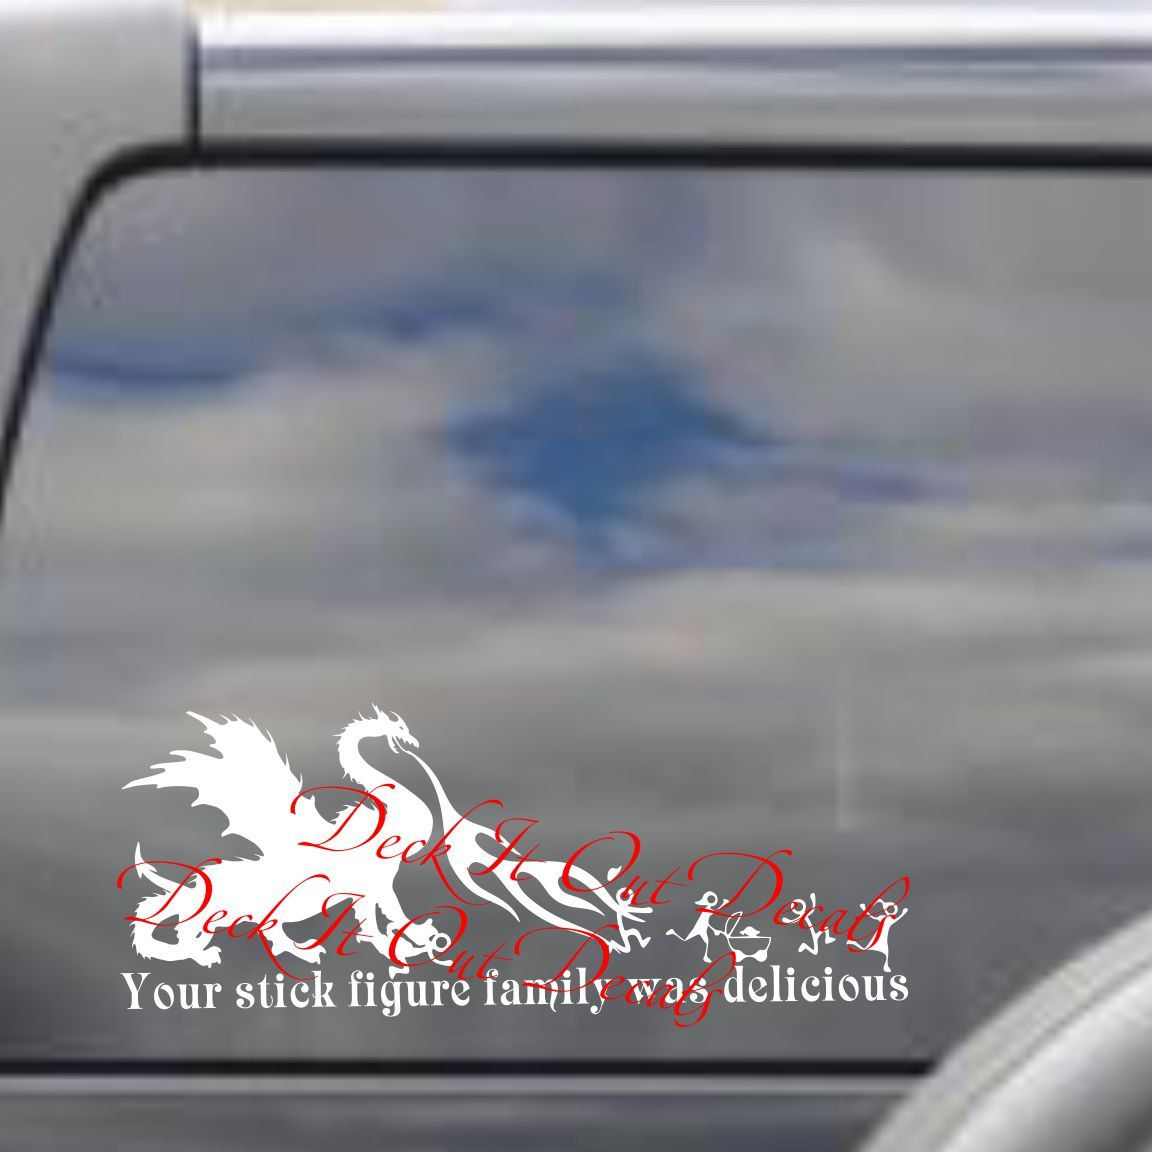 Dragon your stick figure family was delicious vinyl decal car sticker e00266 by deckitoutdecals on etsy